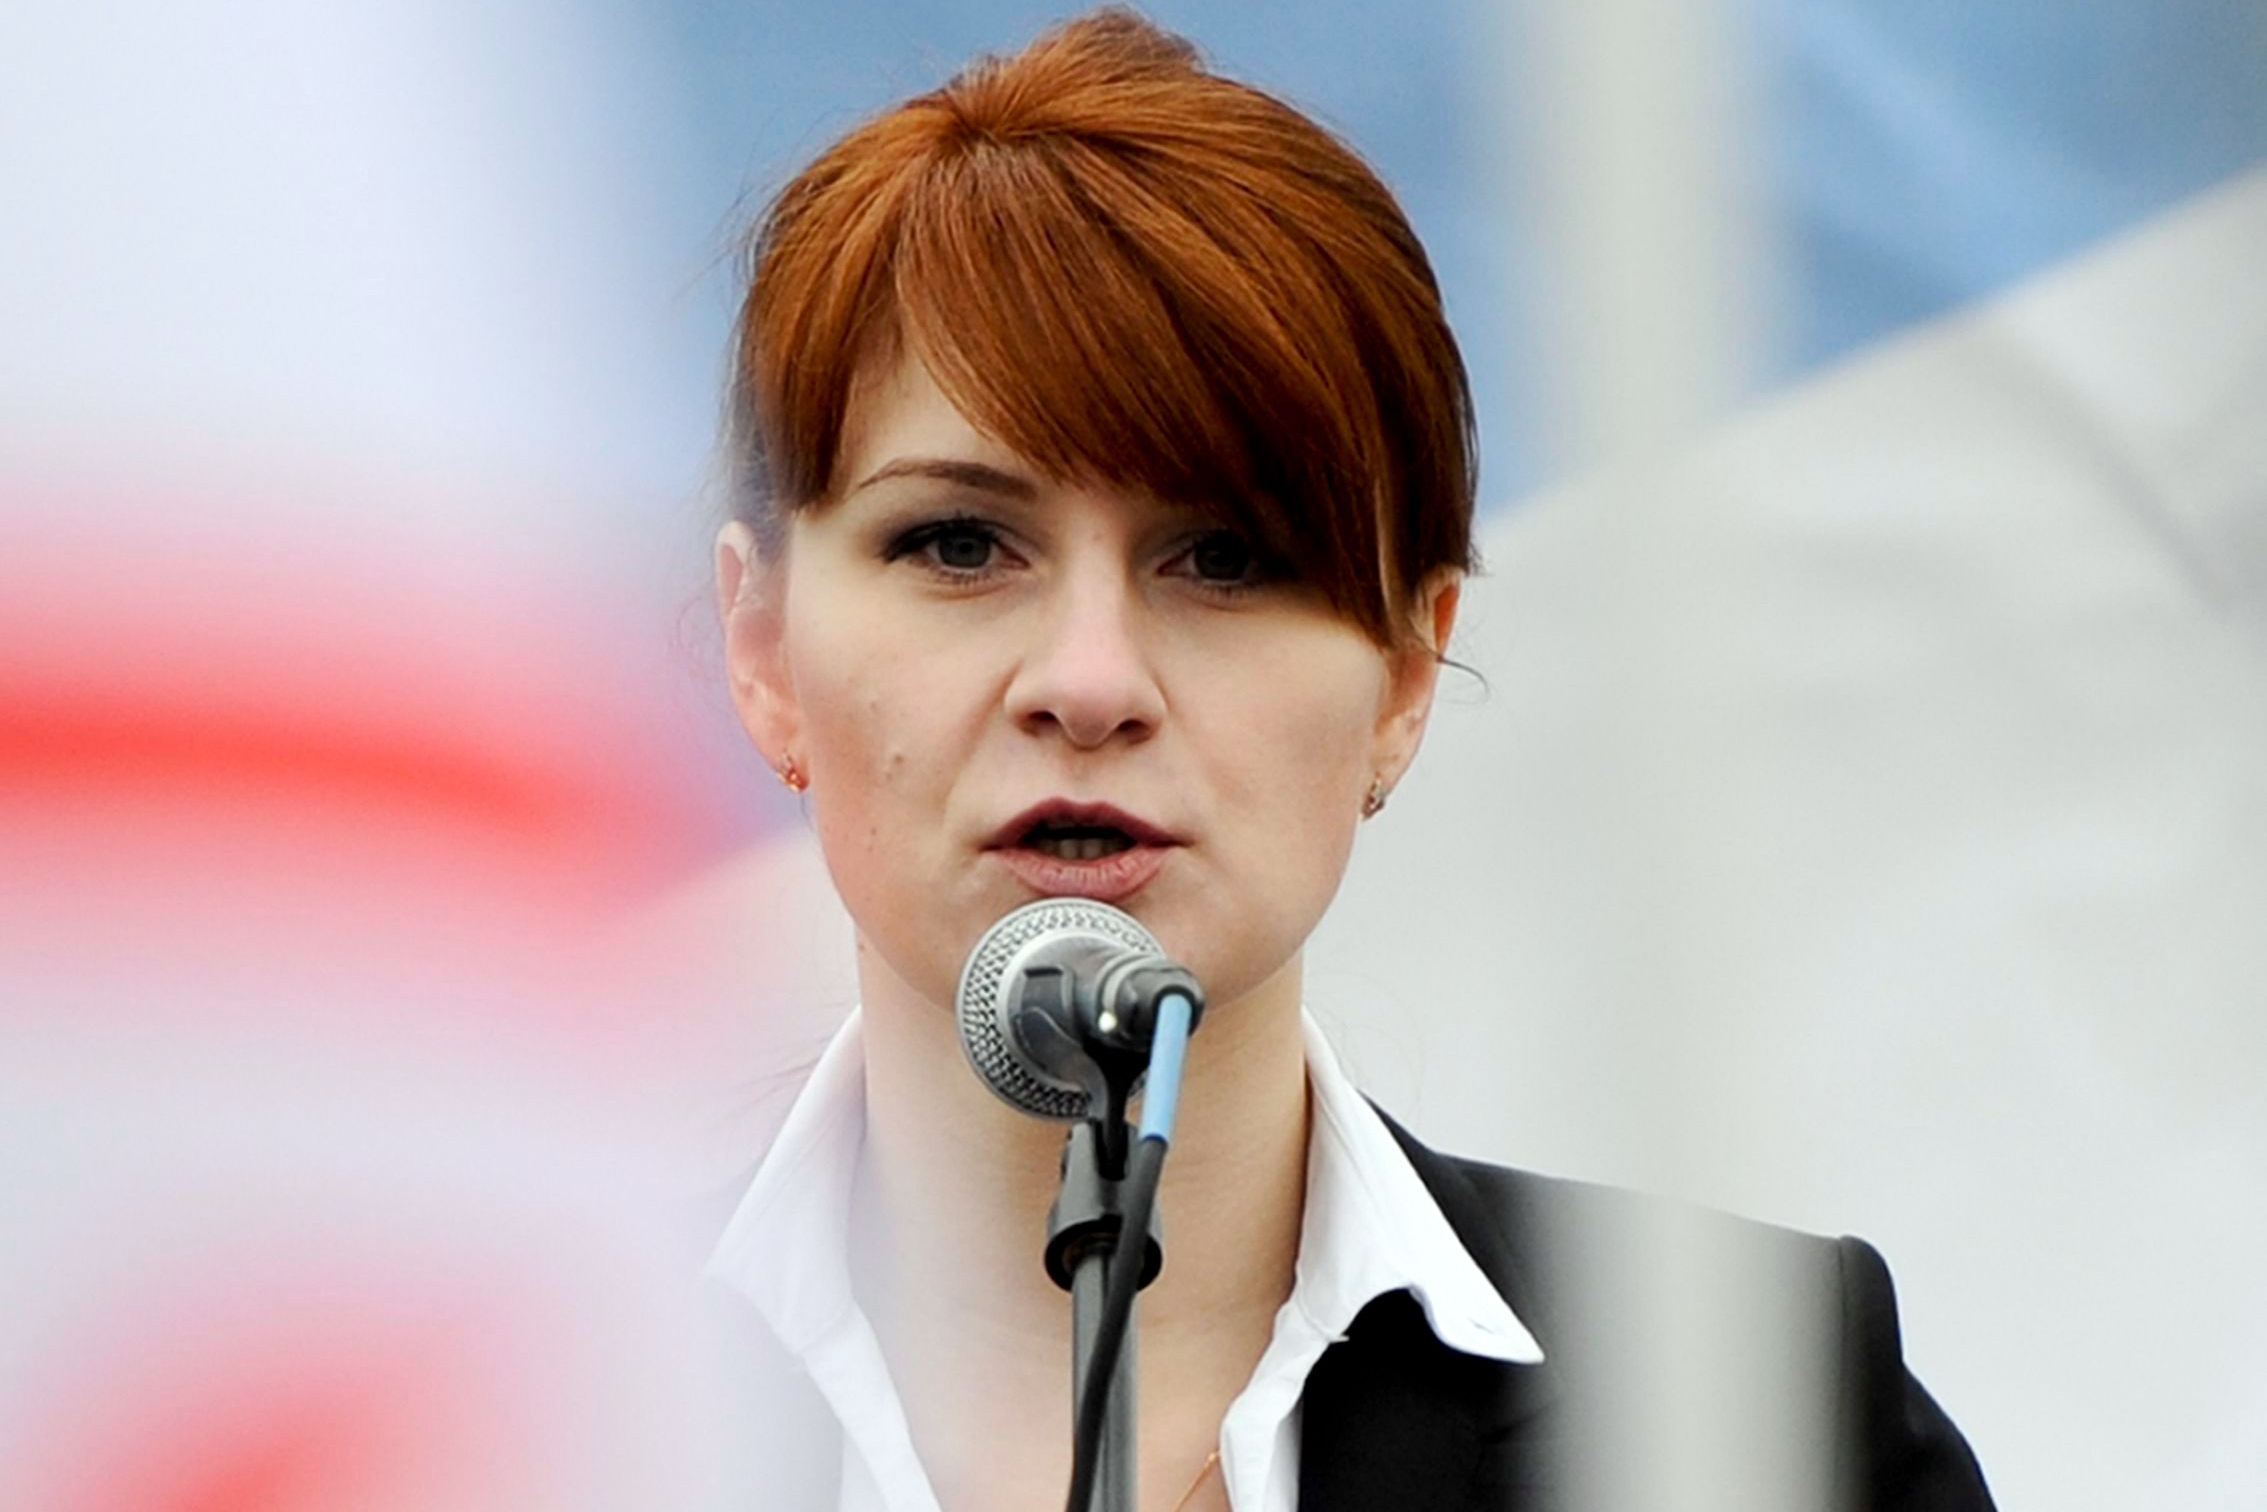 On, Maria Butina, leader of a pro-gun organization in Russia, speaks to a crowd during a rally in support of legalizing the possession of handguns in Moscow, Russia. Butina, a 29-year-old gun-rights activist, served as a covert Russian agent while living in Washington, gathering intelligence on American officials and political organizations and working to establish back-channel lines of communications for the Kremlin, federal prosecutors charged Monday, July 16, 2018Trump Russia Probe, Moscow, Russian Federation - 21 Apr 2013MARIIA